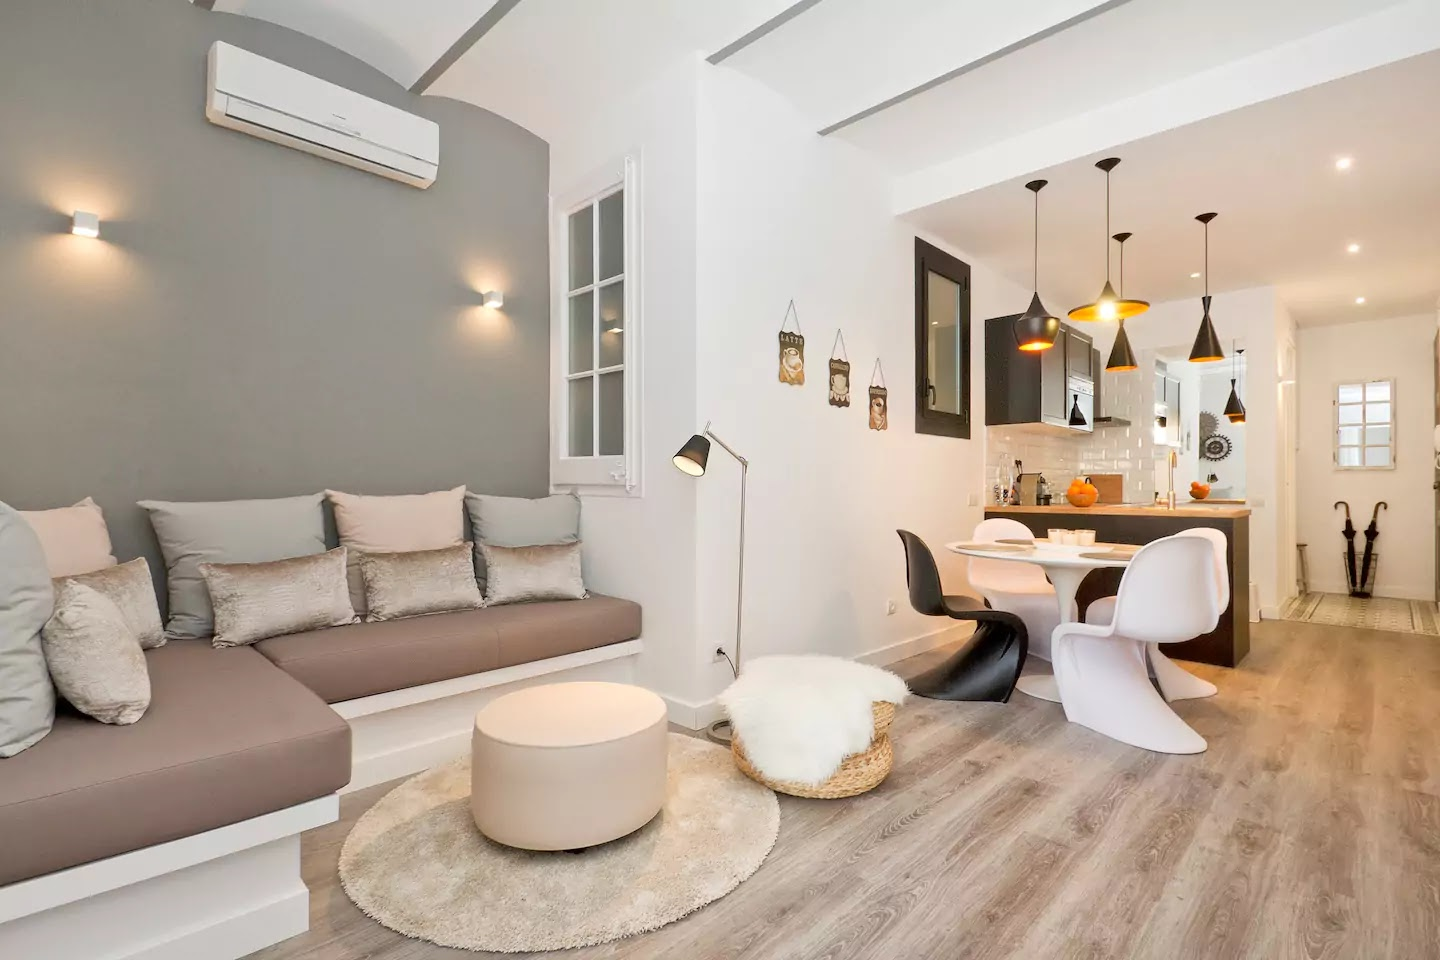 Visit Barcelona in an Airbnb.